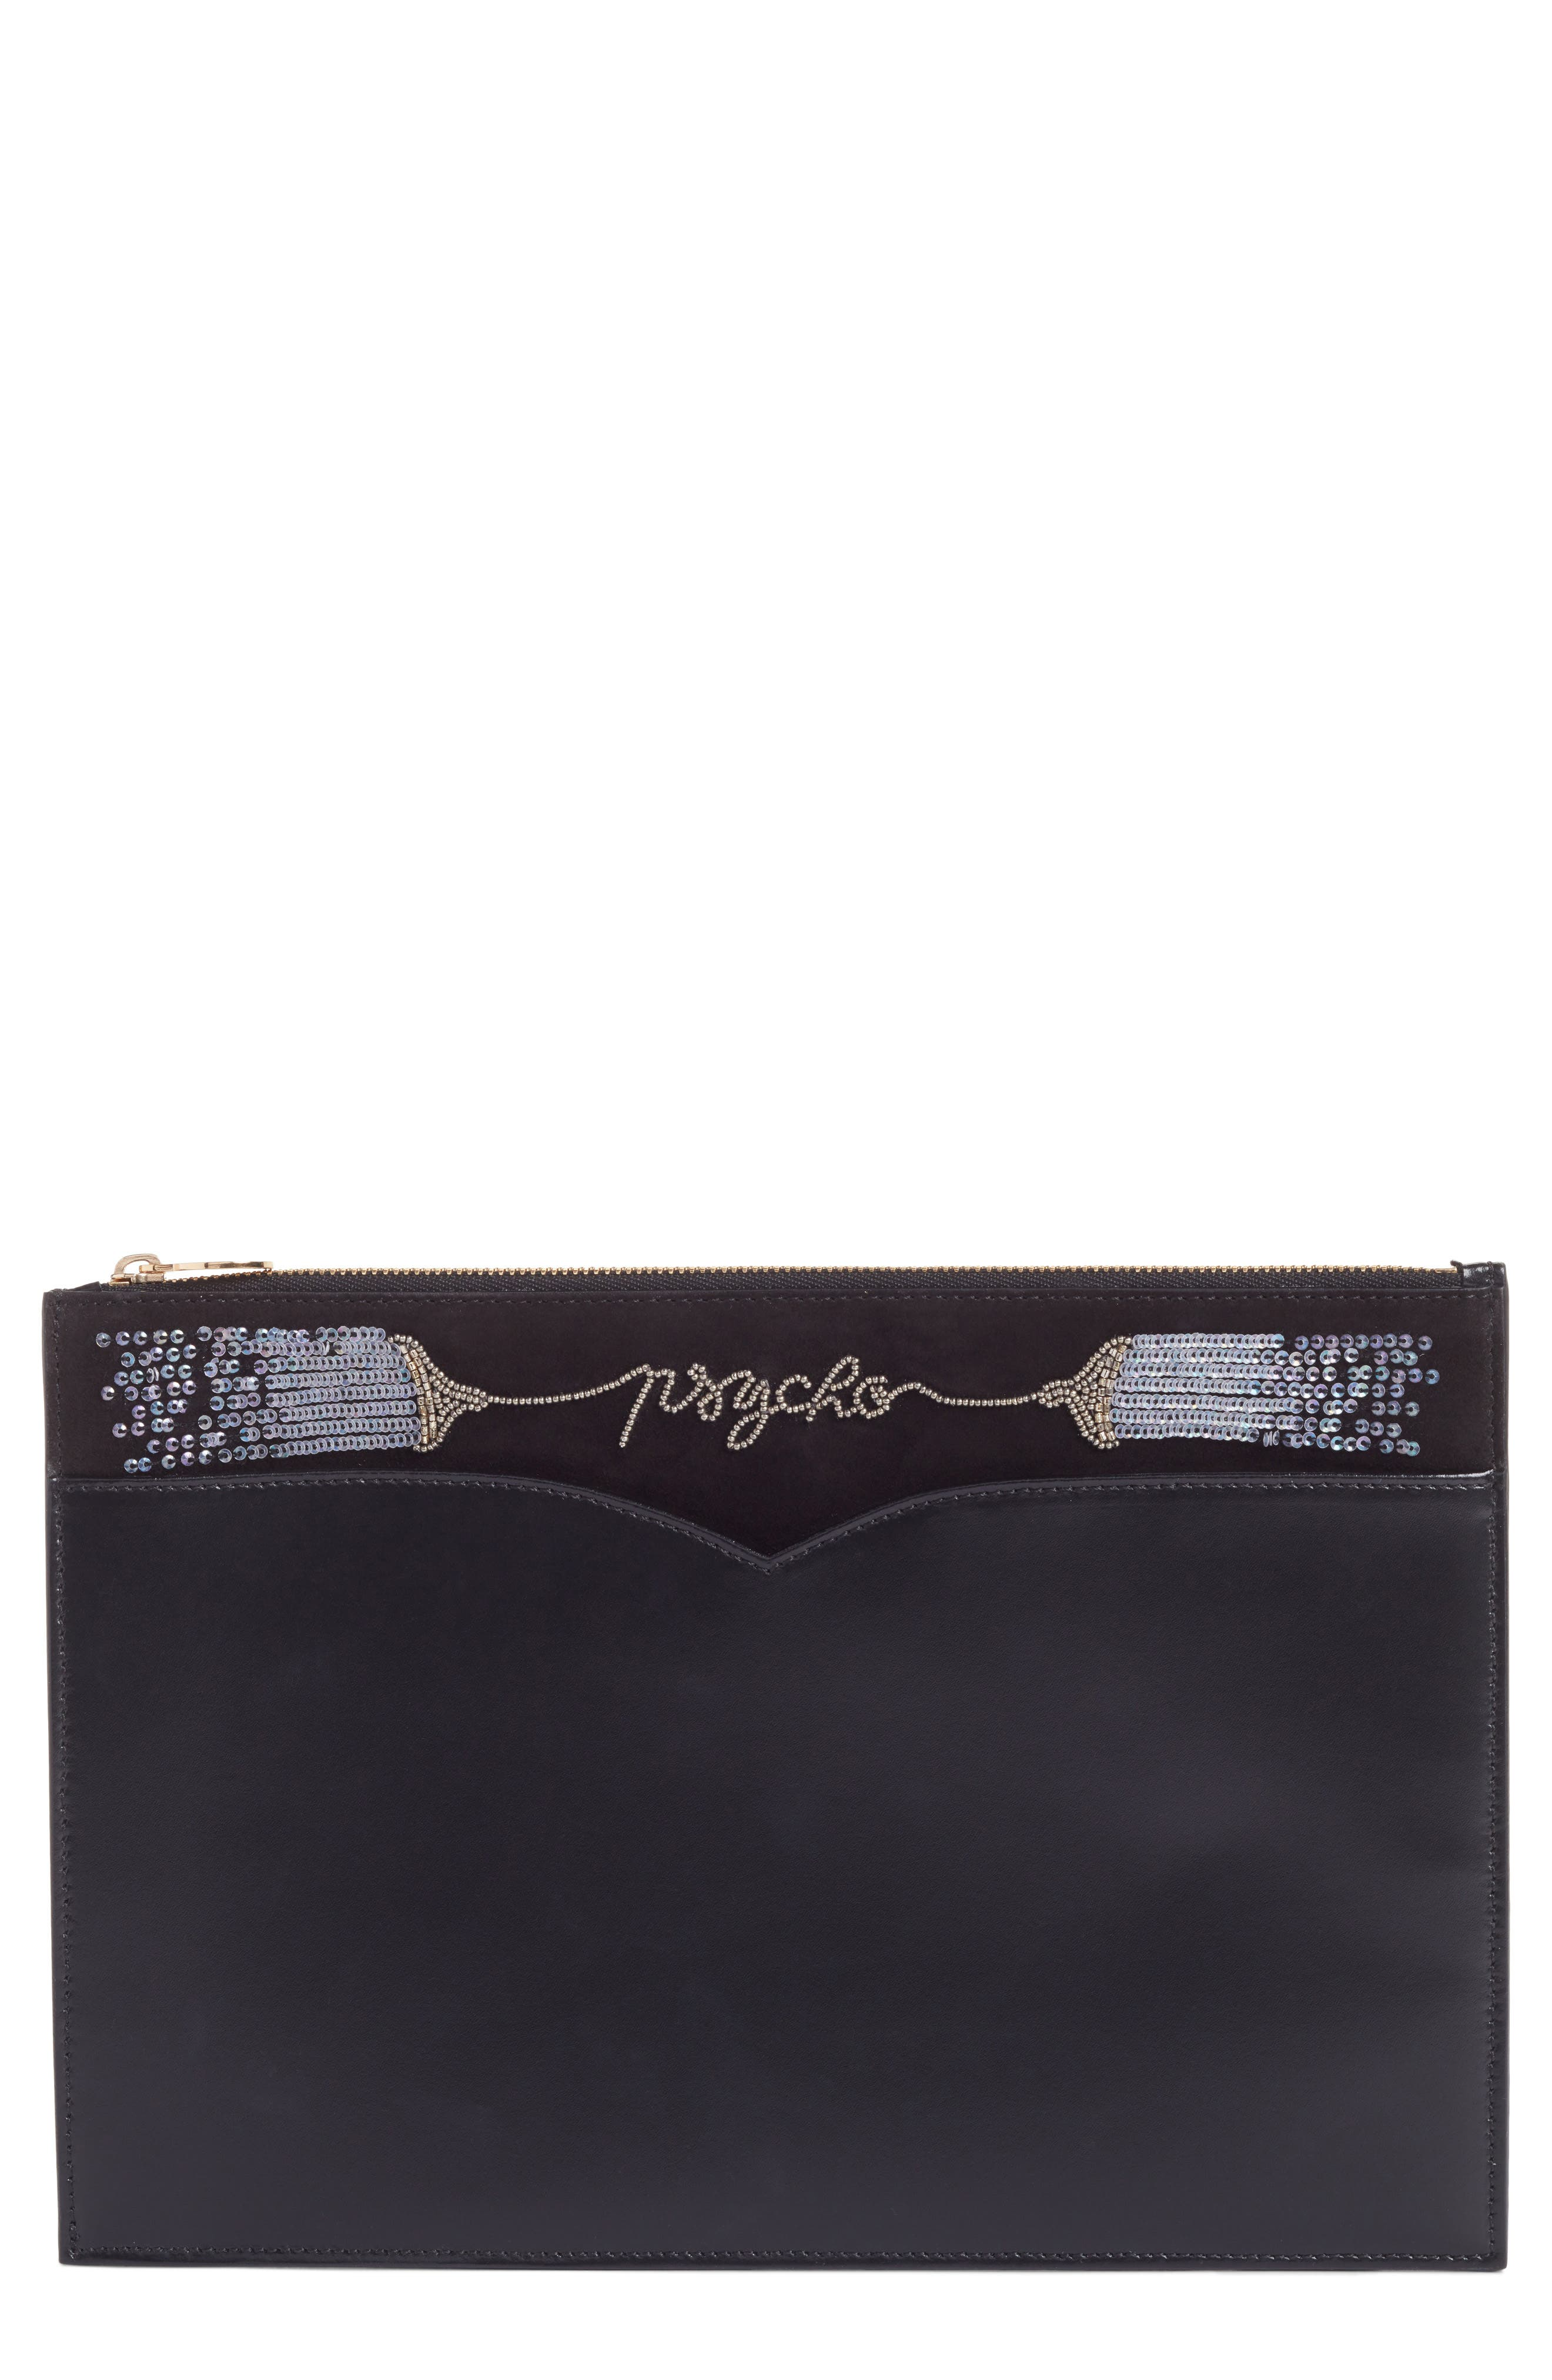 Medium Embellished Leather Zip Pouch,                             Main thumbnail 1, color,                             001